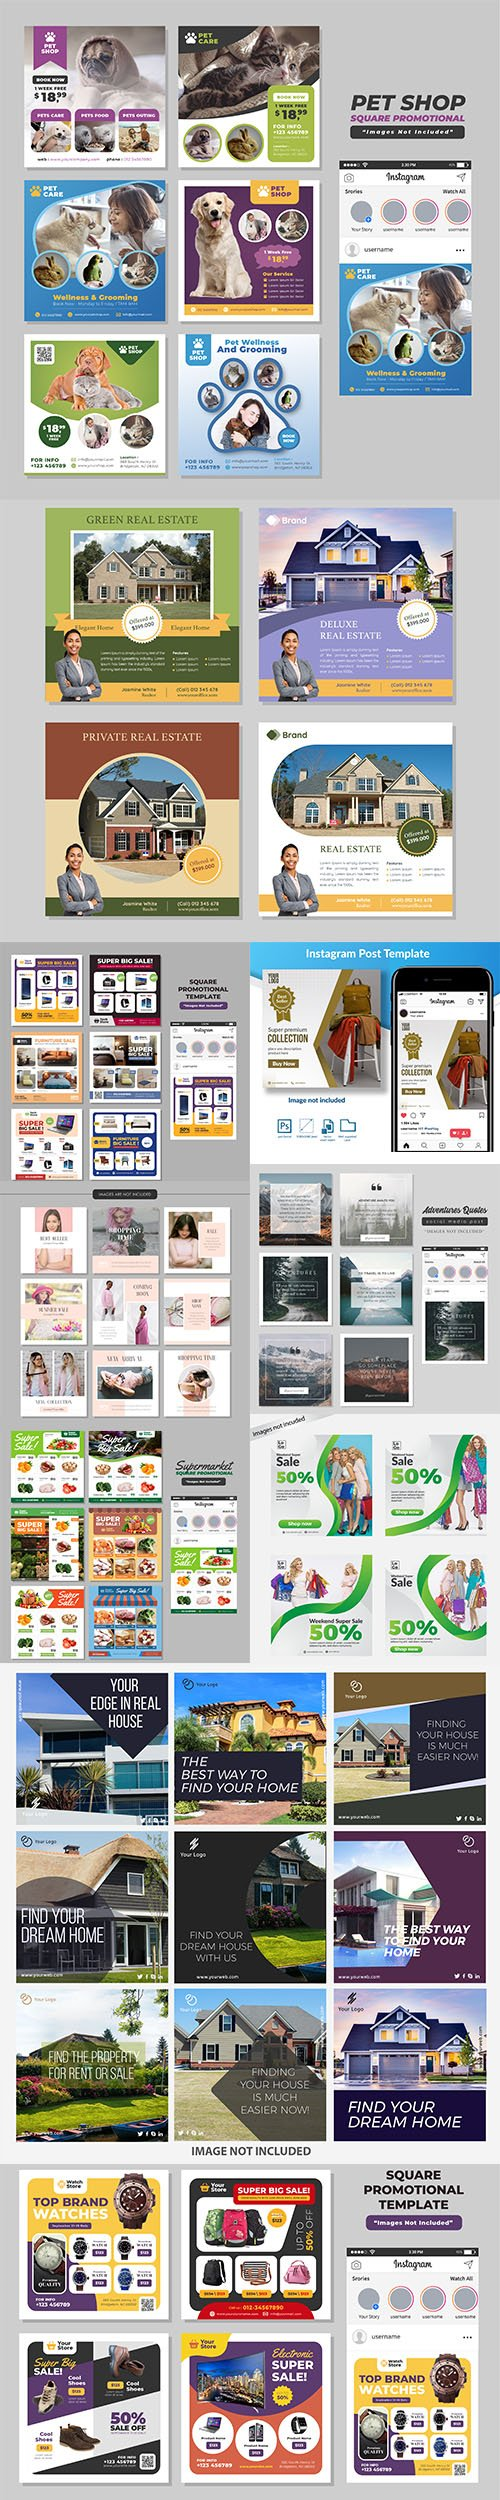 Social Media Post PSD and EPS Template Set 5